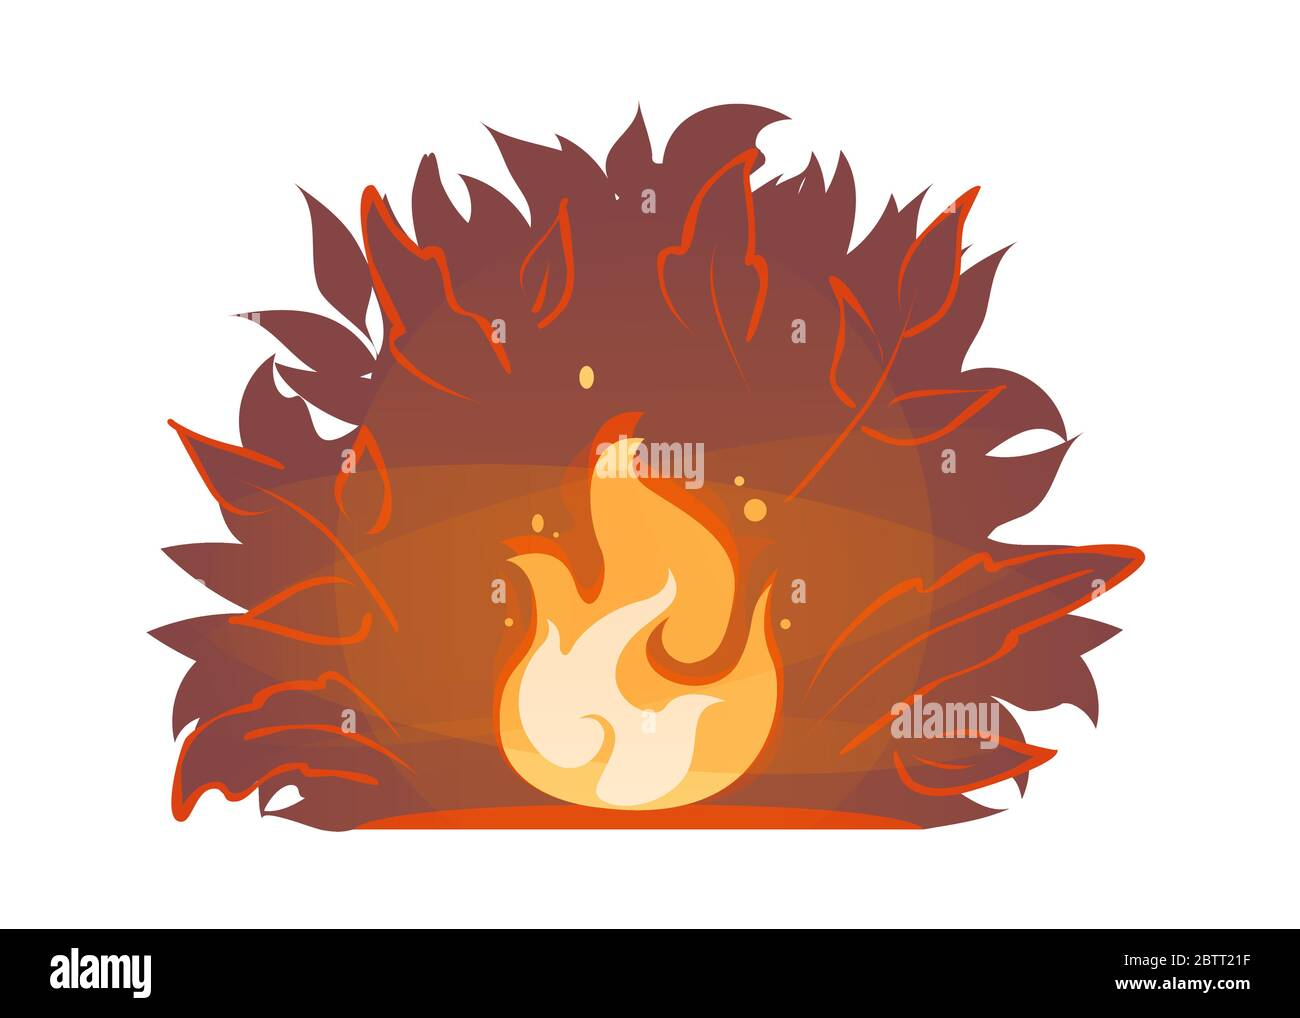 Wildfire Graphic Black White Forest Fire Landscape Sketch Illustration..  Royalty Free Cliparts, Vectors, And Stock Illustration. Image 110108422.